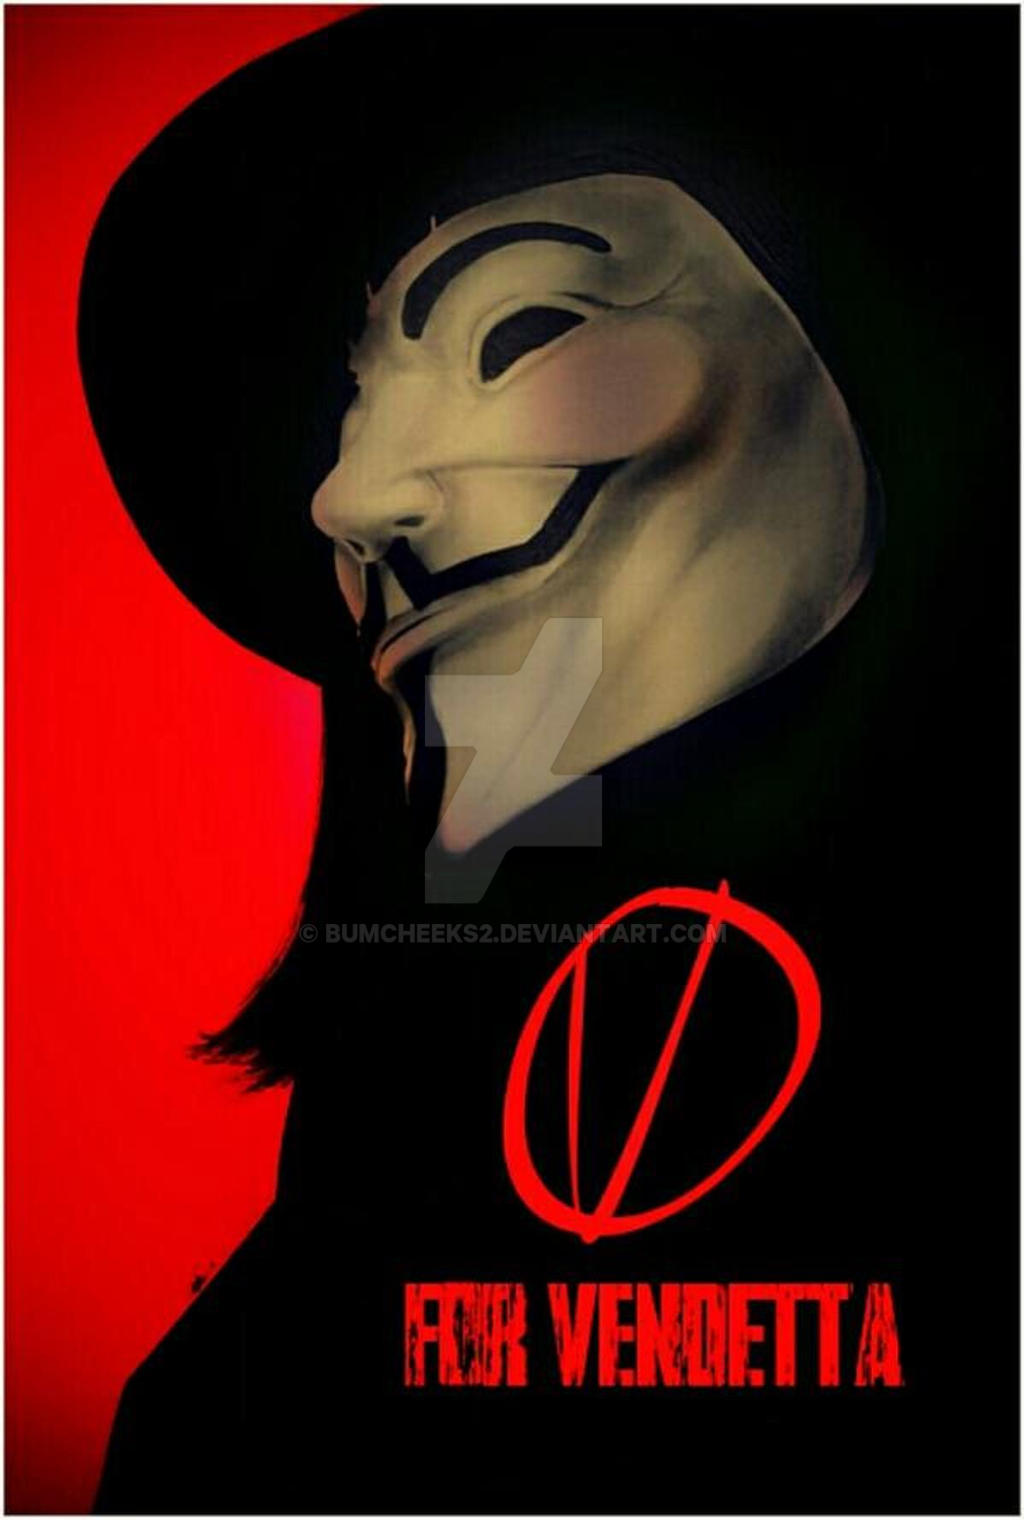 V FOR VENDETTA VARIANT by BUMCHEEKS2